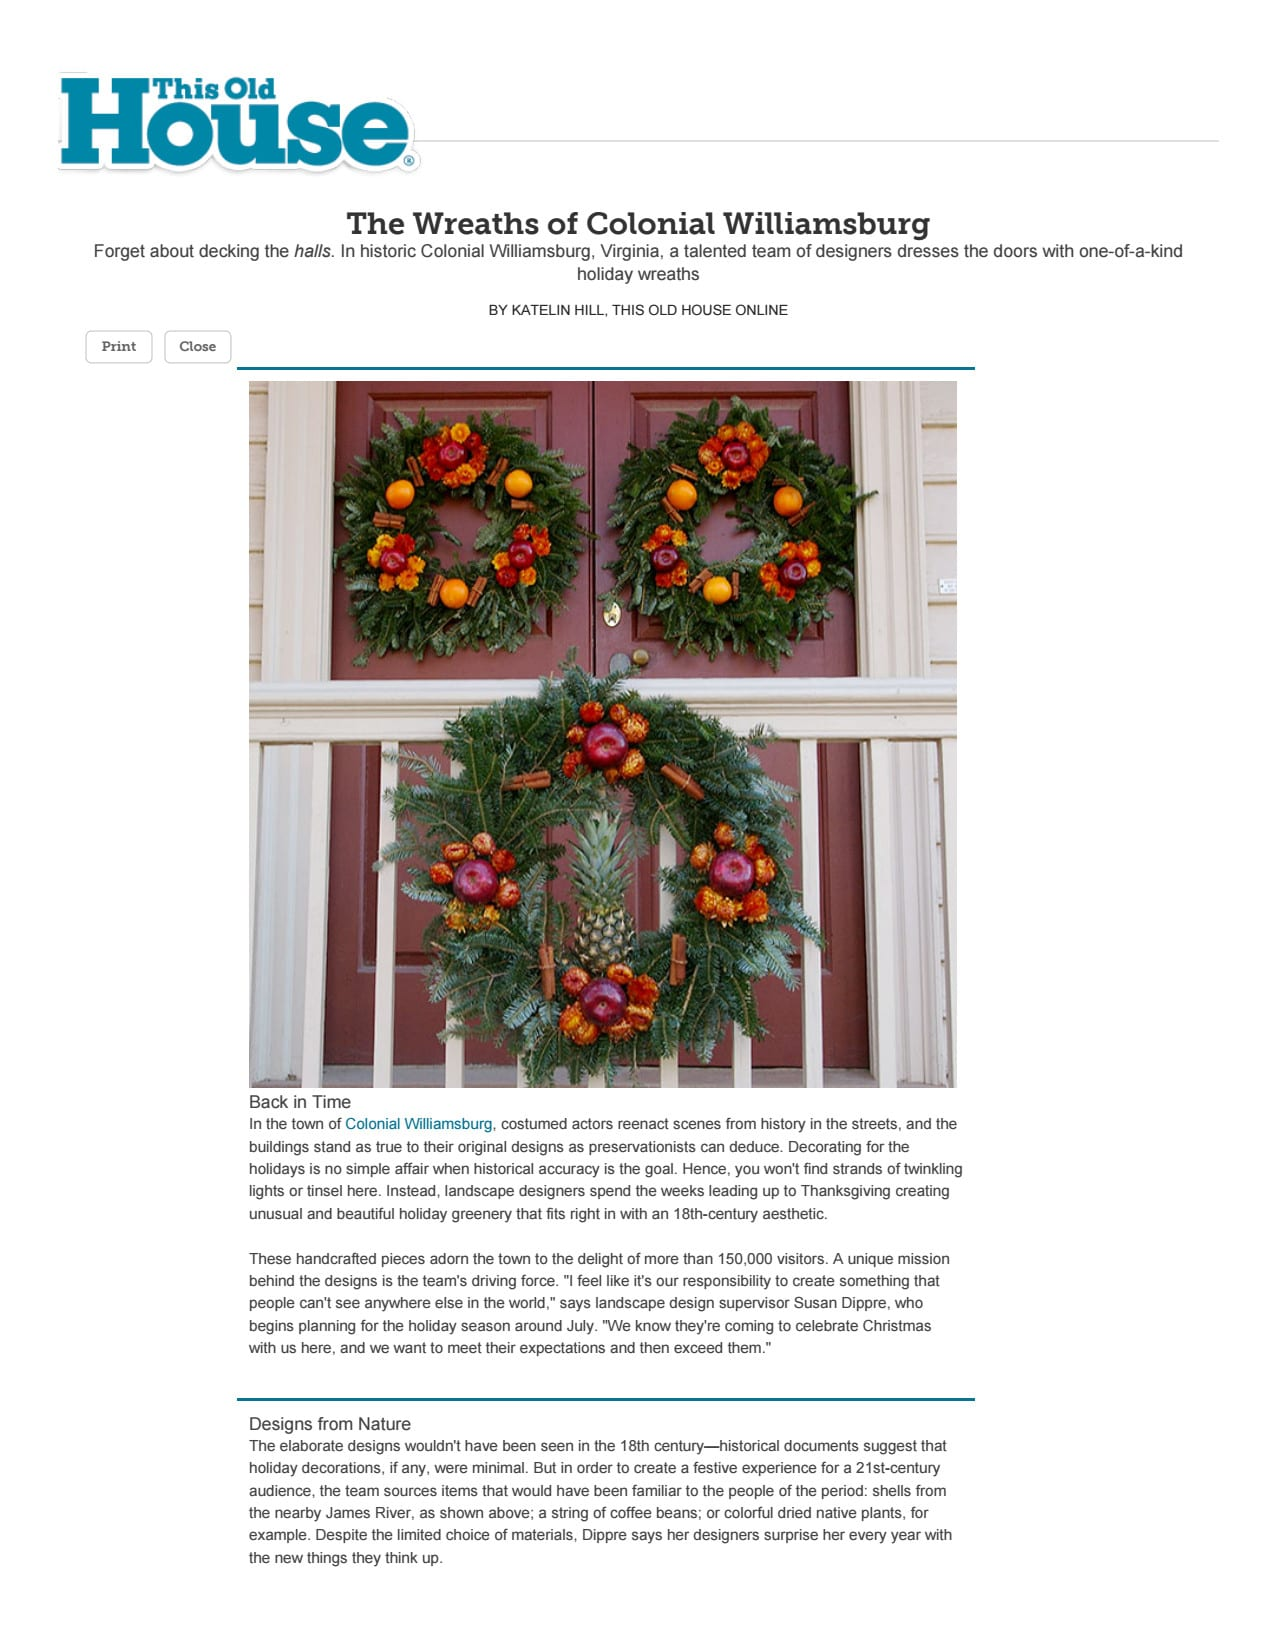 The Wreaths of Colonial Williamsburg: This Old House